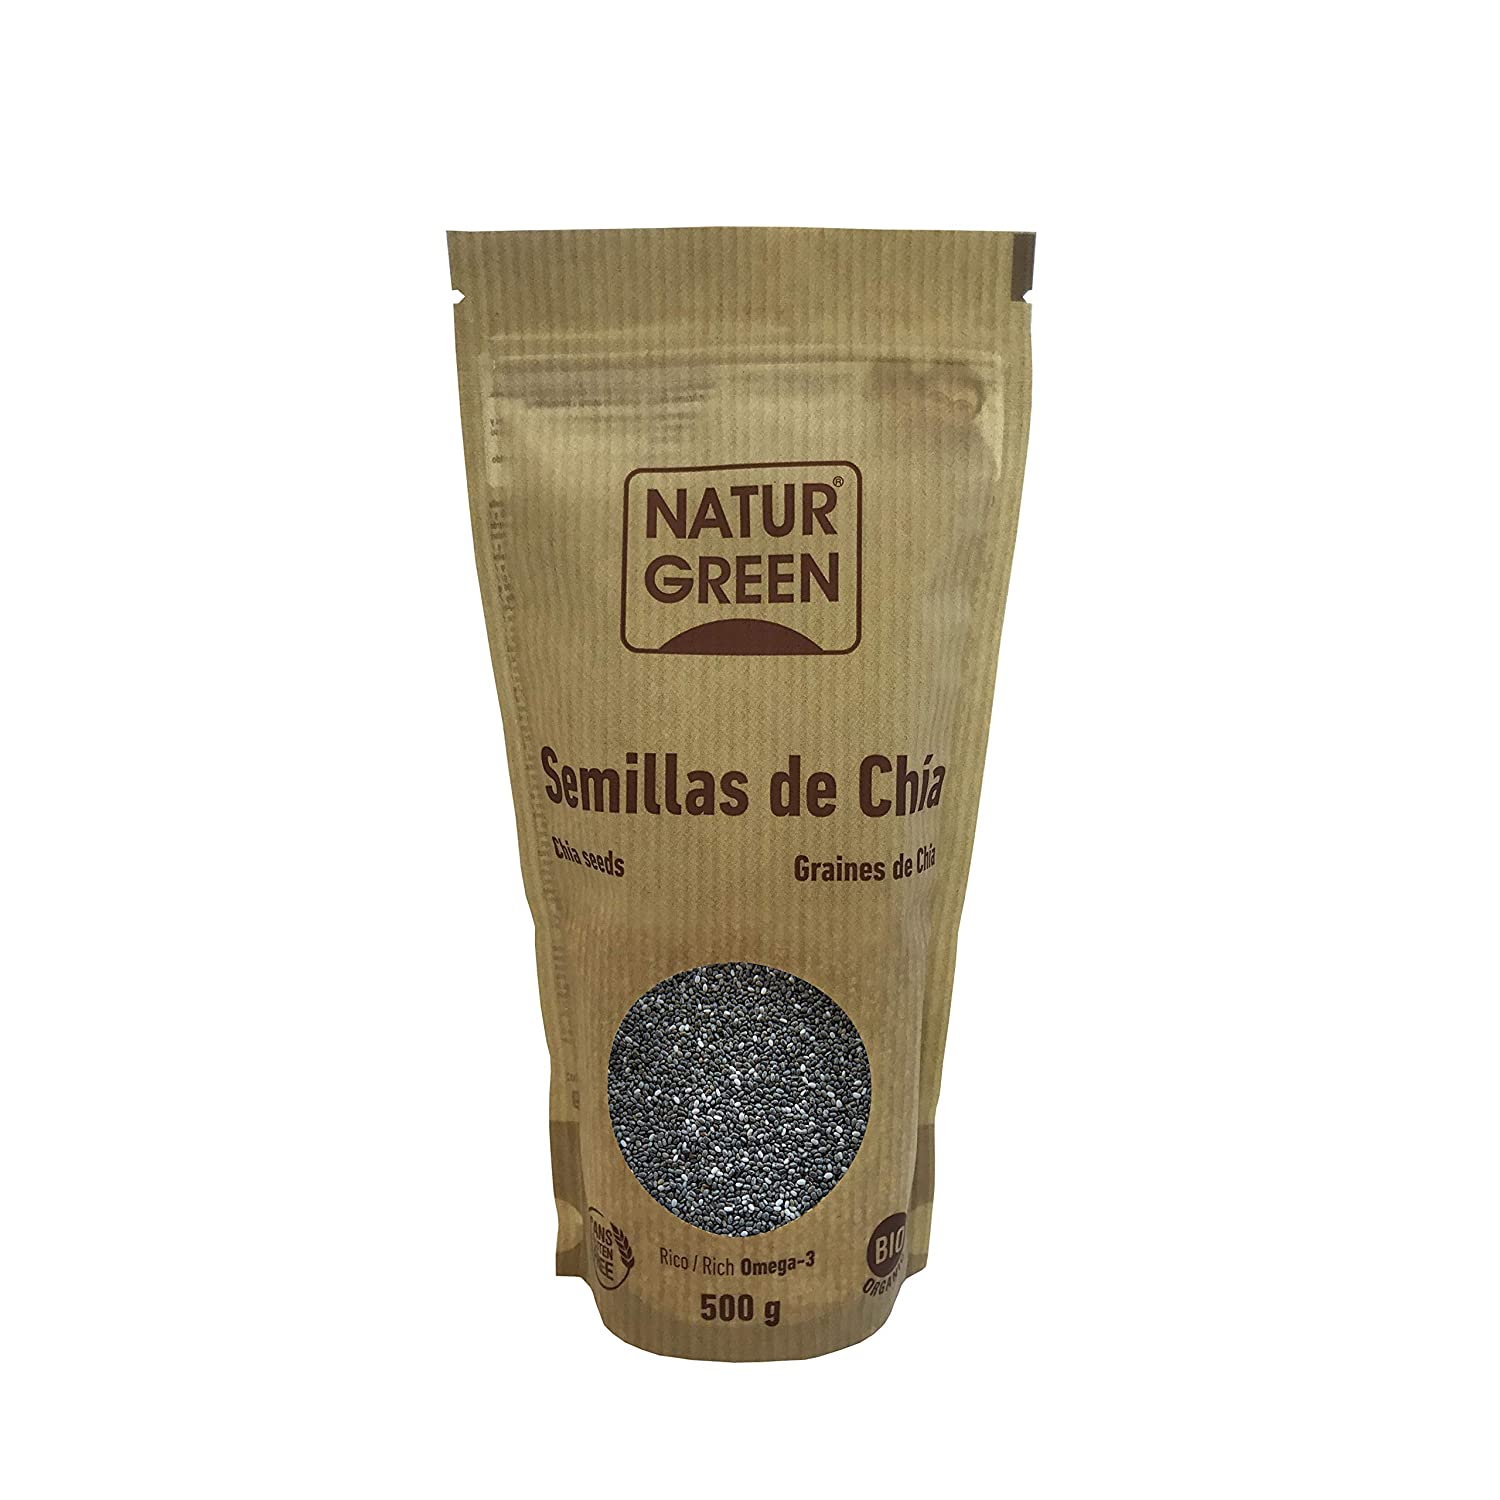 Semillas Chia NaturGreen, 500g: Amazon.es: Hogar